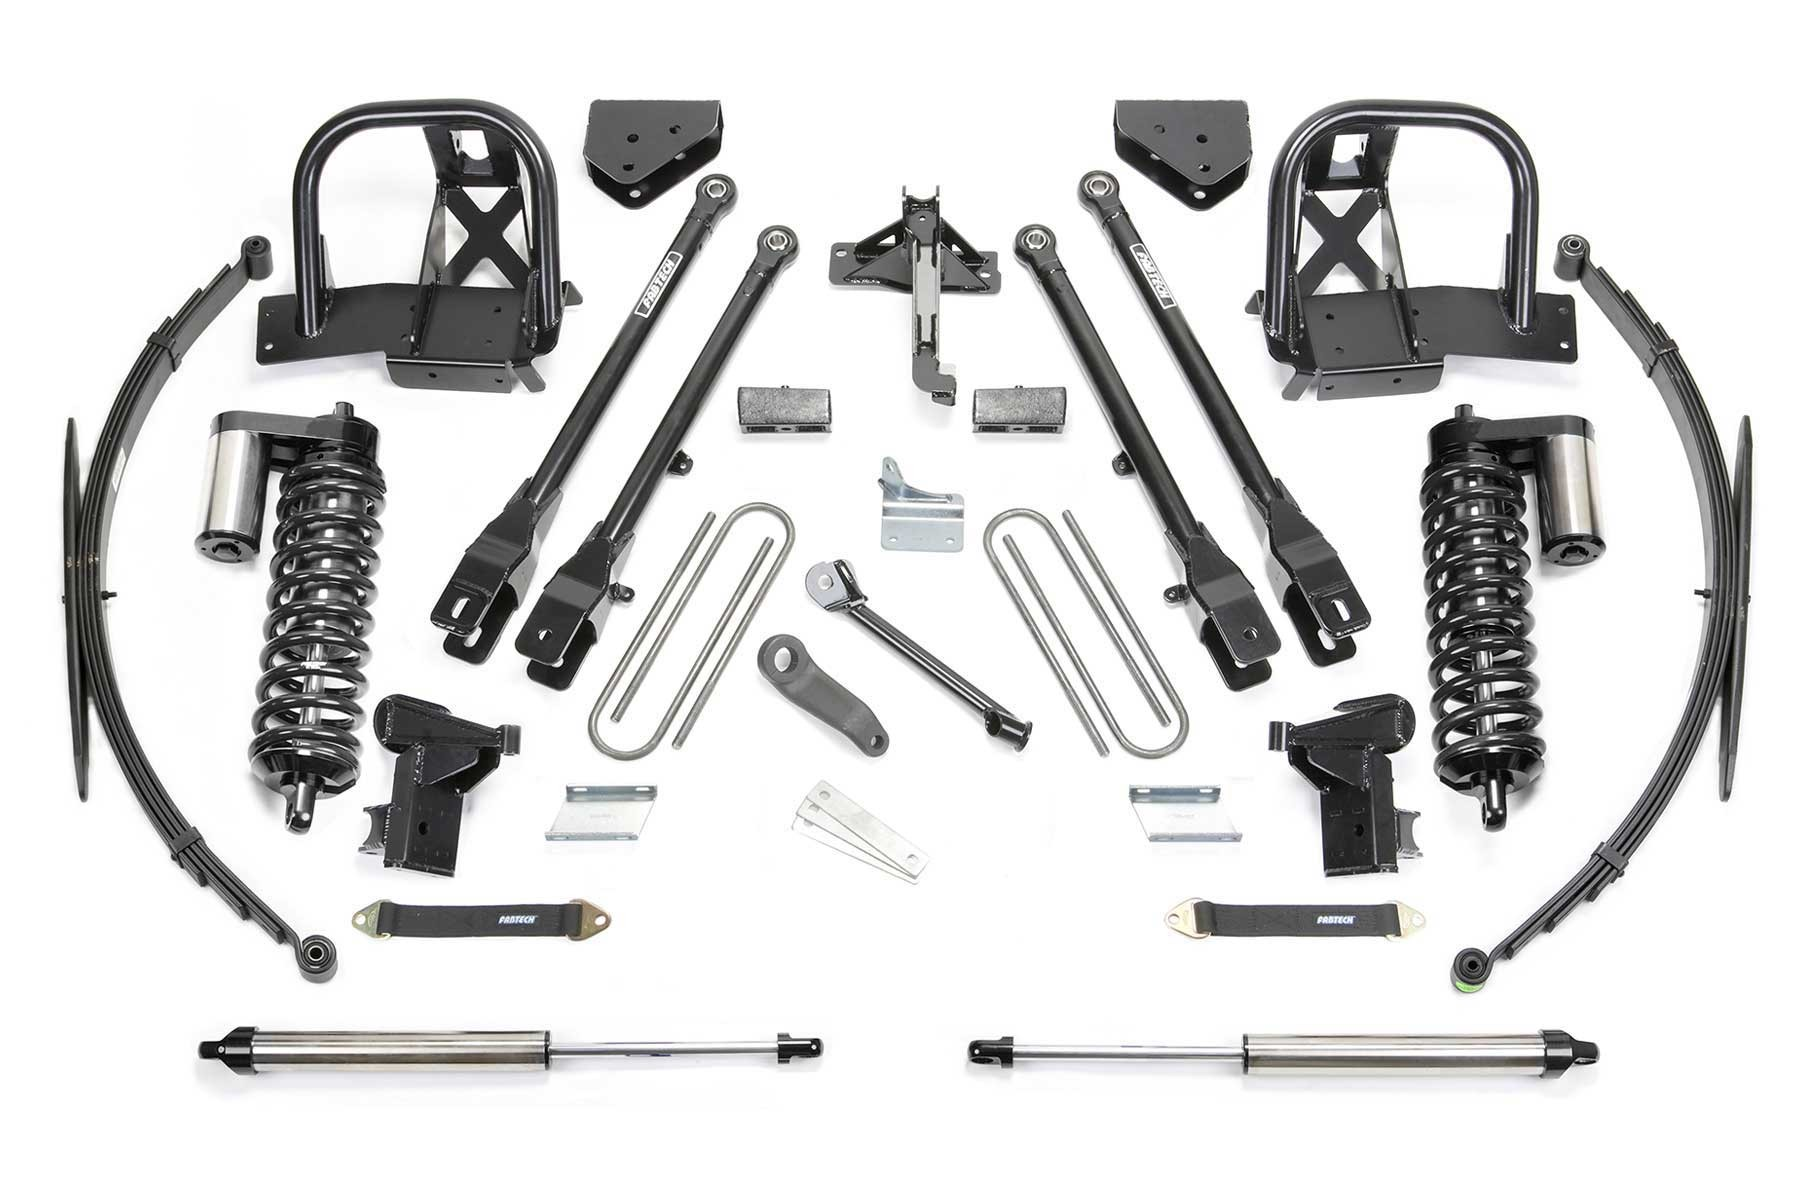 FABTECH 2008-10 Ford F250 4WD- 10″ 4 LINK SYSTEM W/ DIRT LOGIC 4.0 COILOVERS & REAR DIRT LOGIC SHOCKS